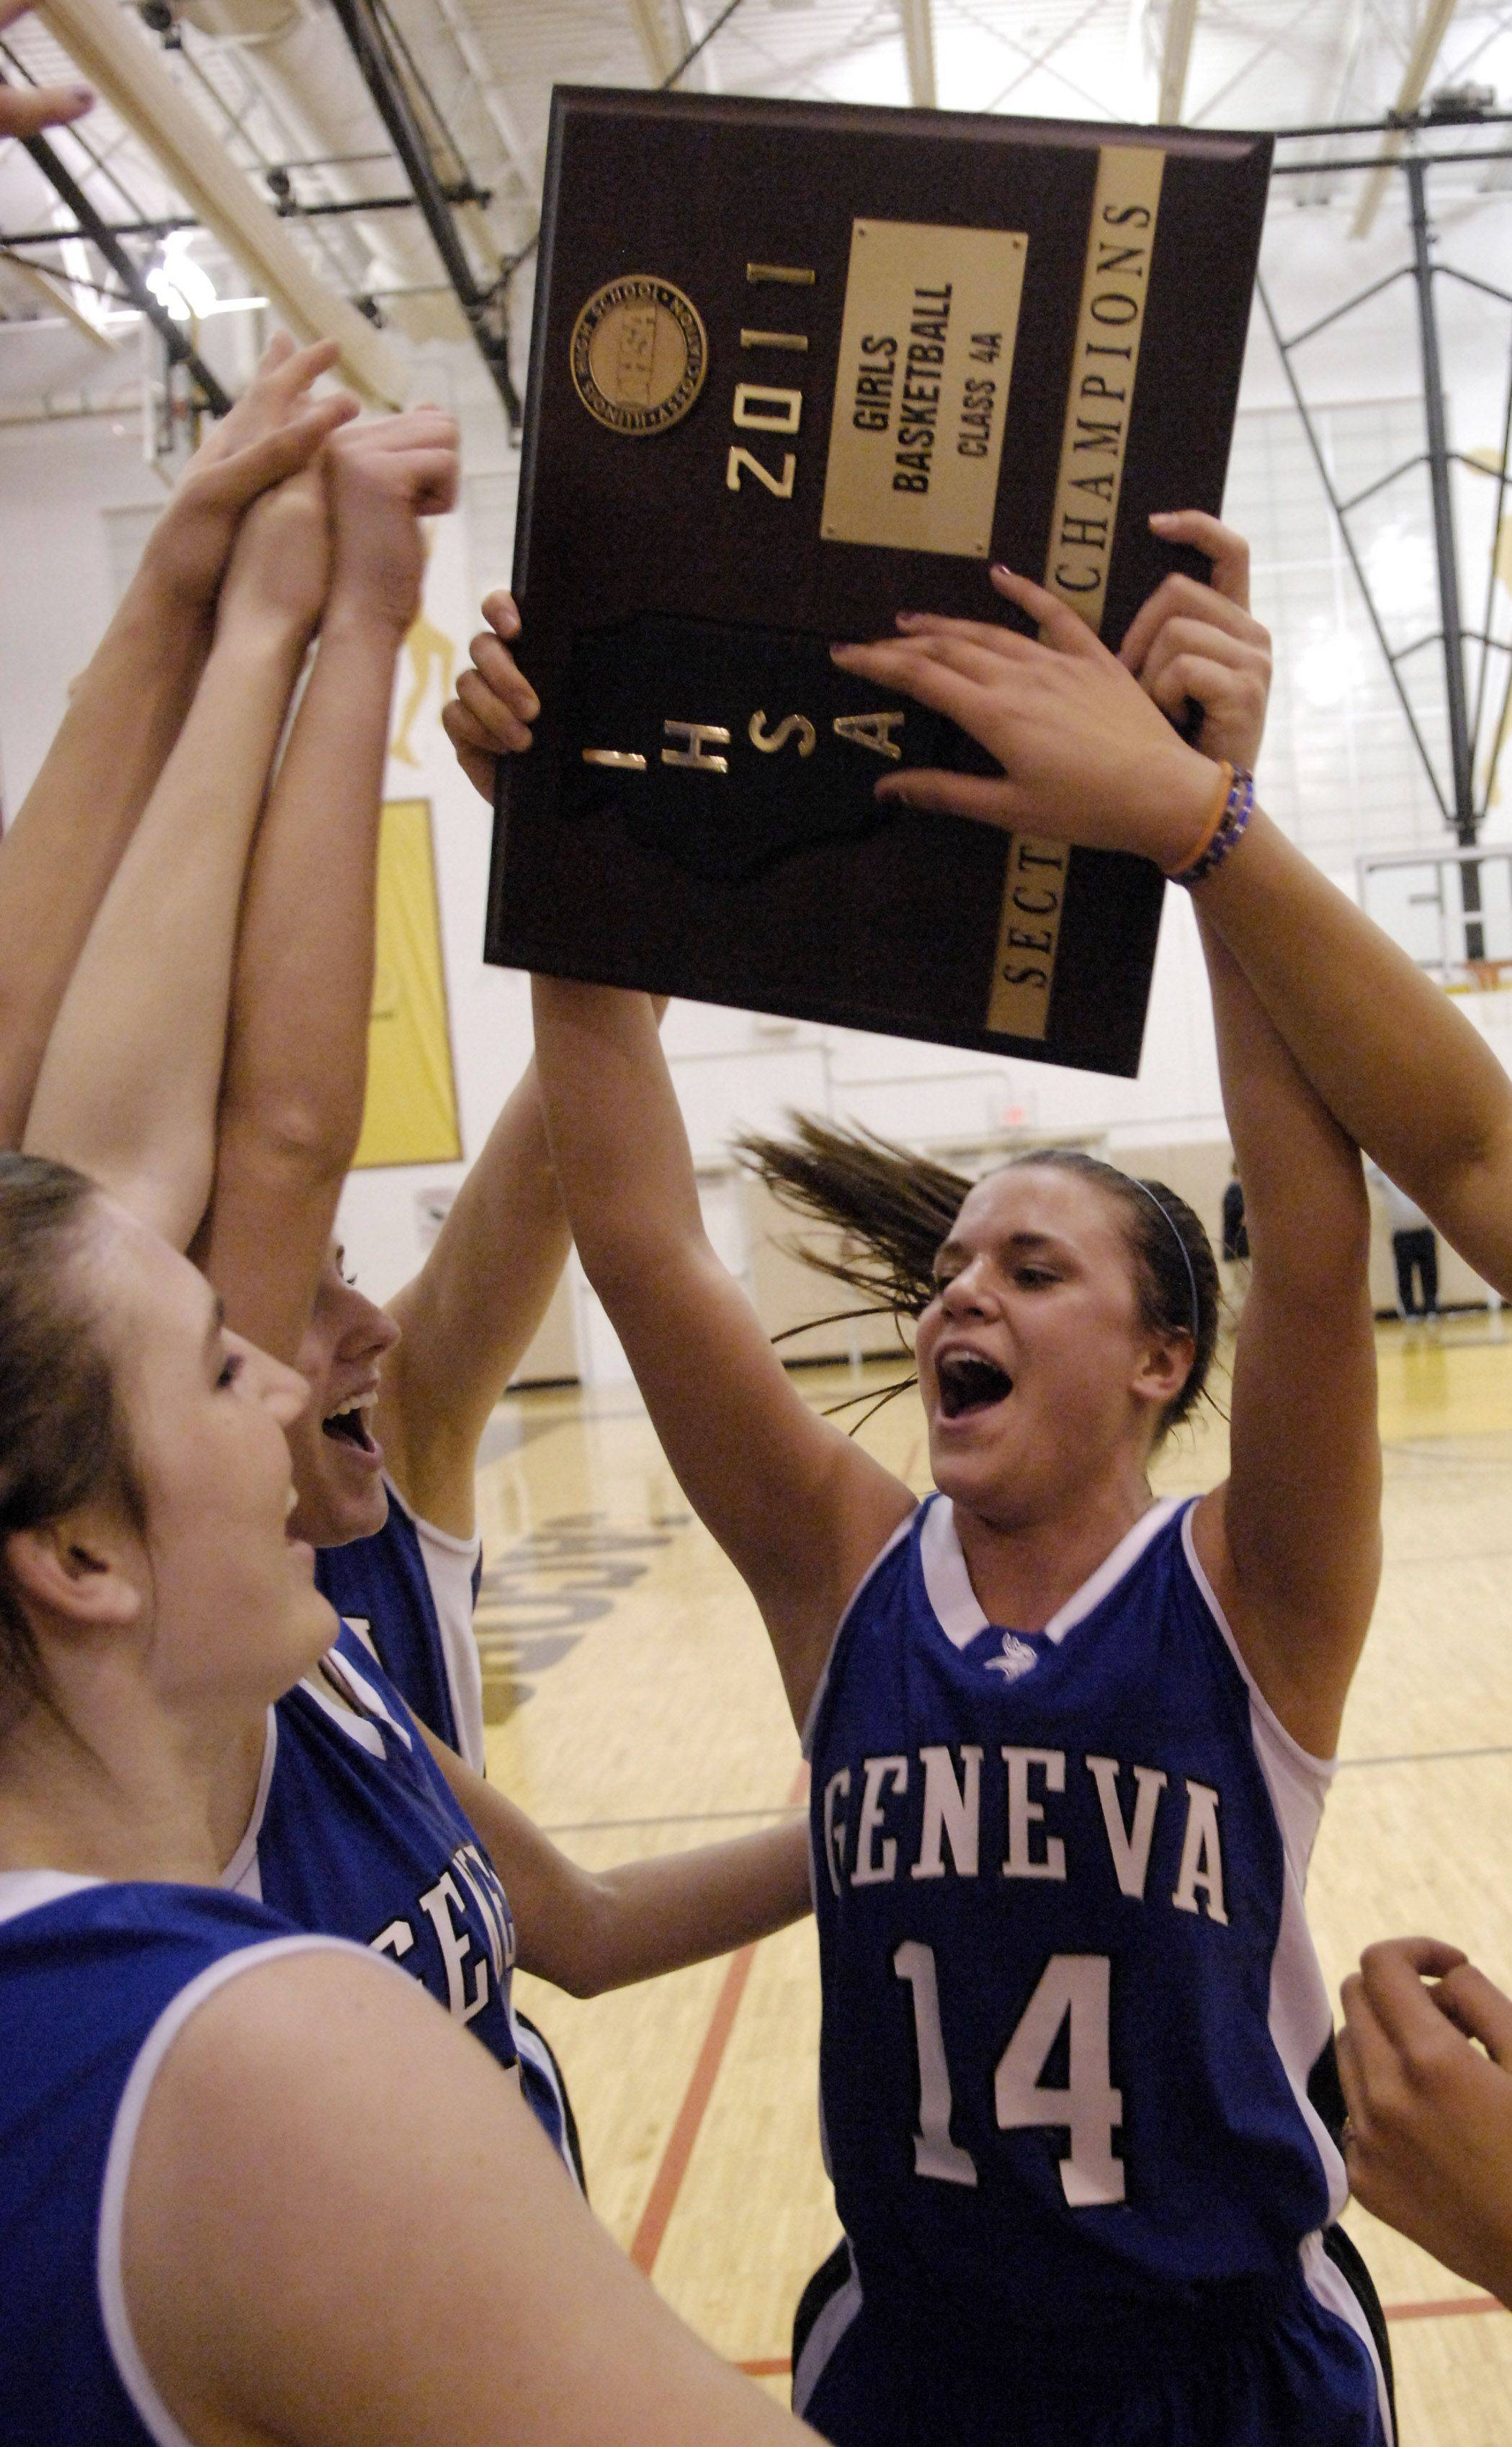 Geneva�s Kat Yelle hoists up the sectional championship plaque following their win over Cary-Grove .